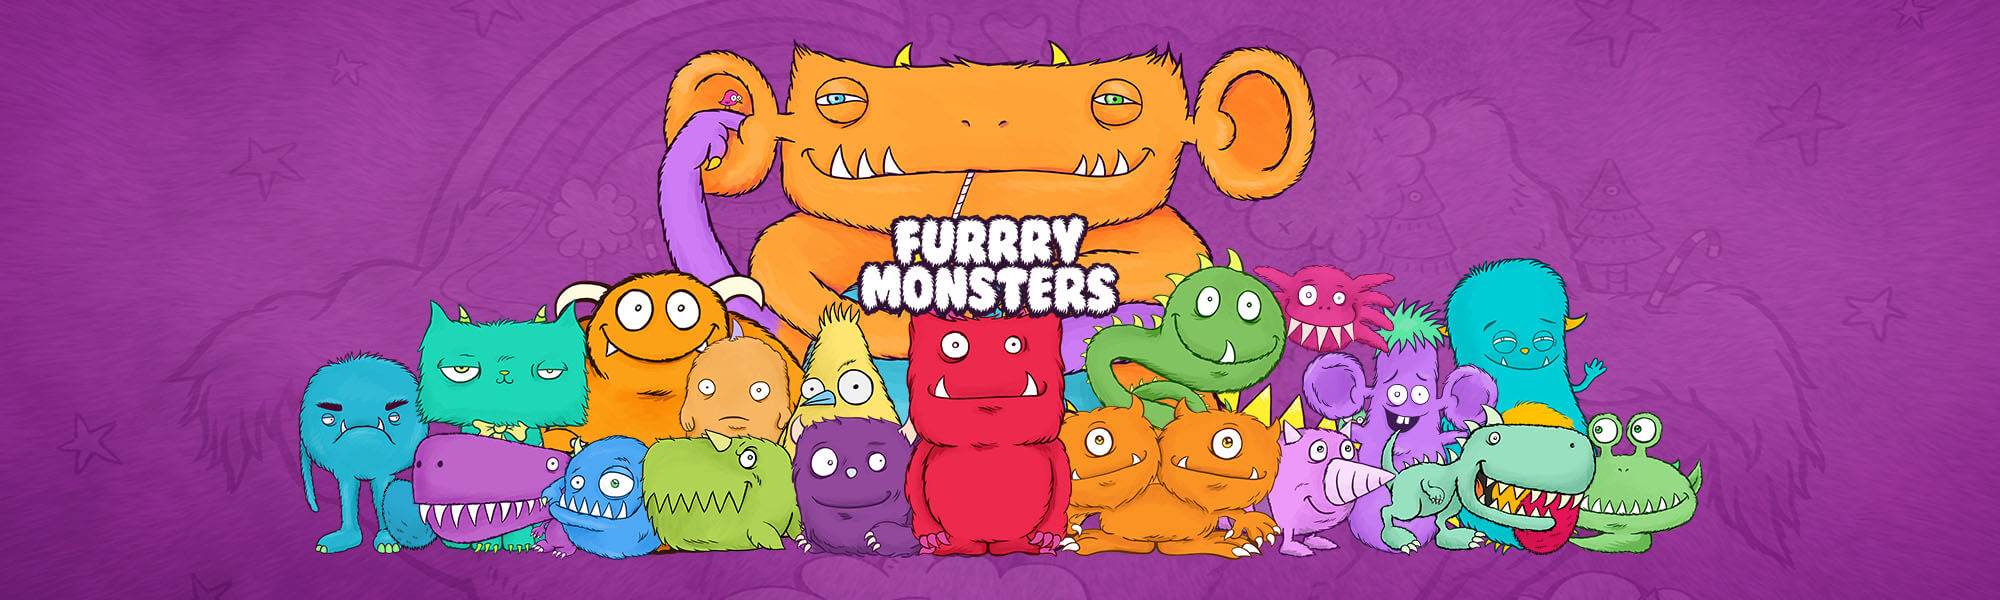 Furrry Monsters